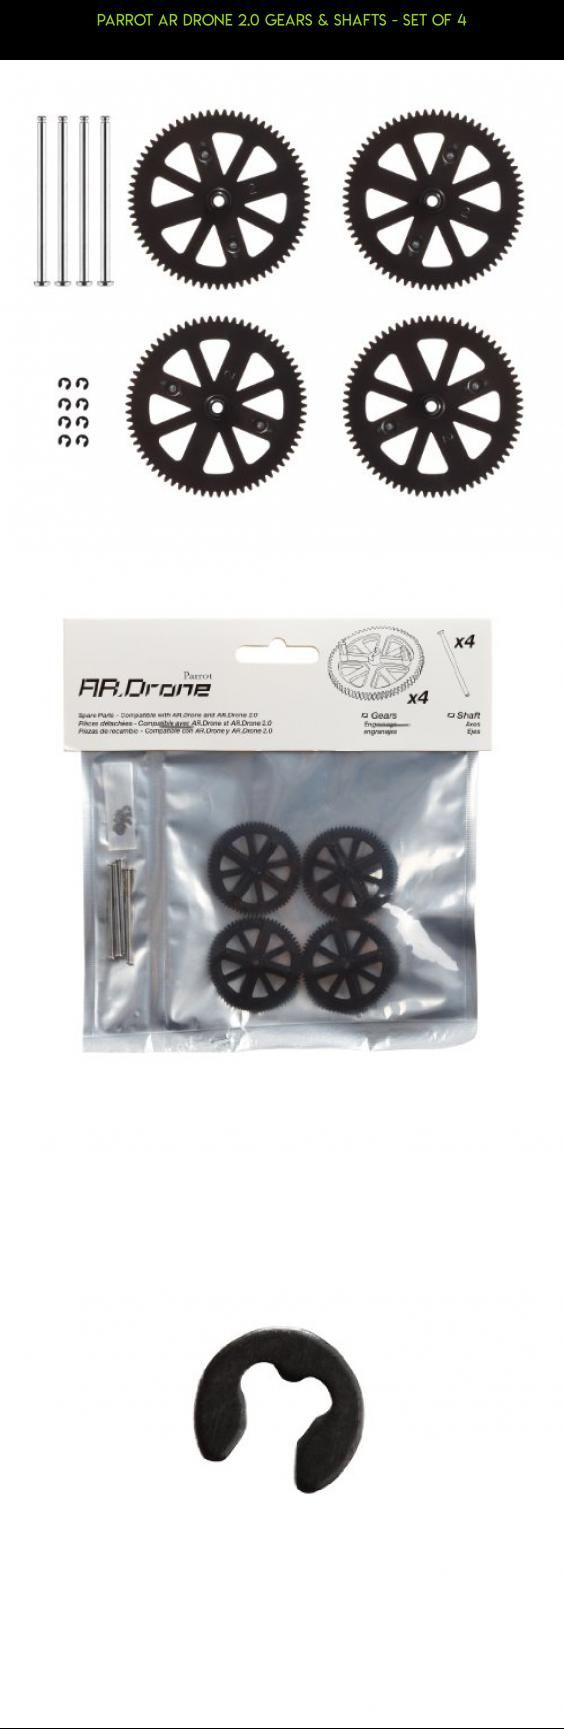 Parrot AR Drone 2.0 Gears & Shafts - Set of 4 #parrot #fpv #parts #products #drone #camera #tech #shopping #racing #kit #drone #plans #4 #gadgets #technology